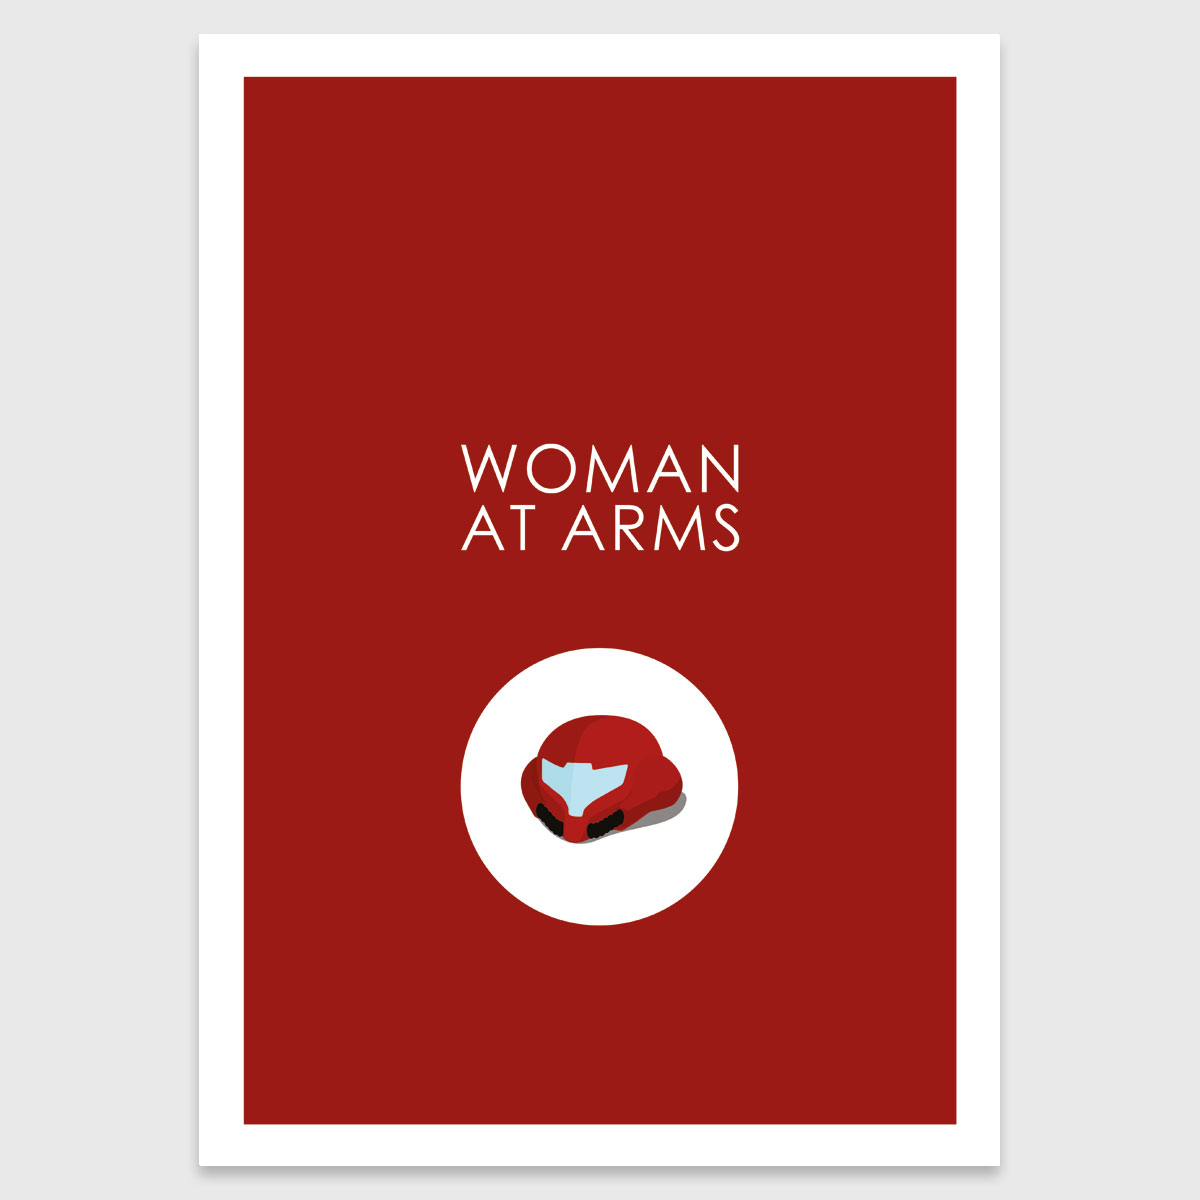 Photograph: Retro print: Woman at arms